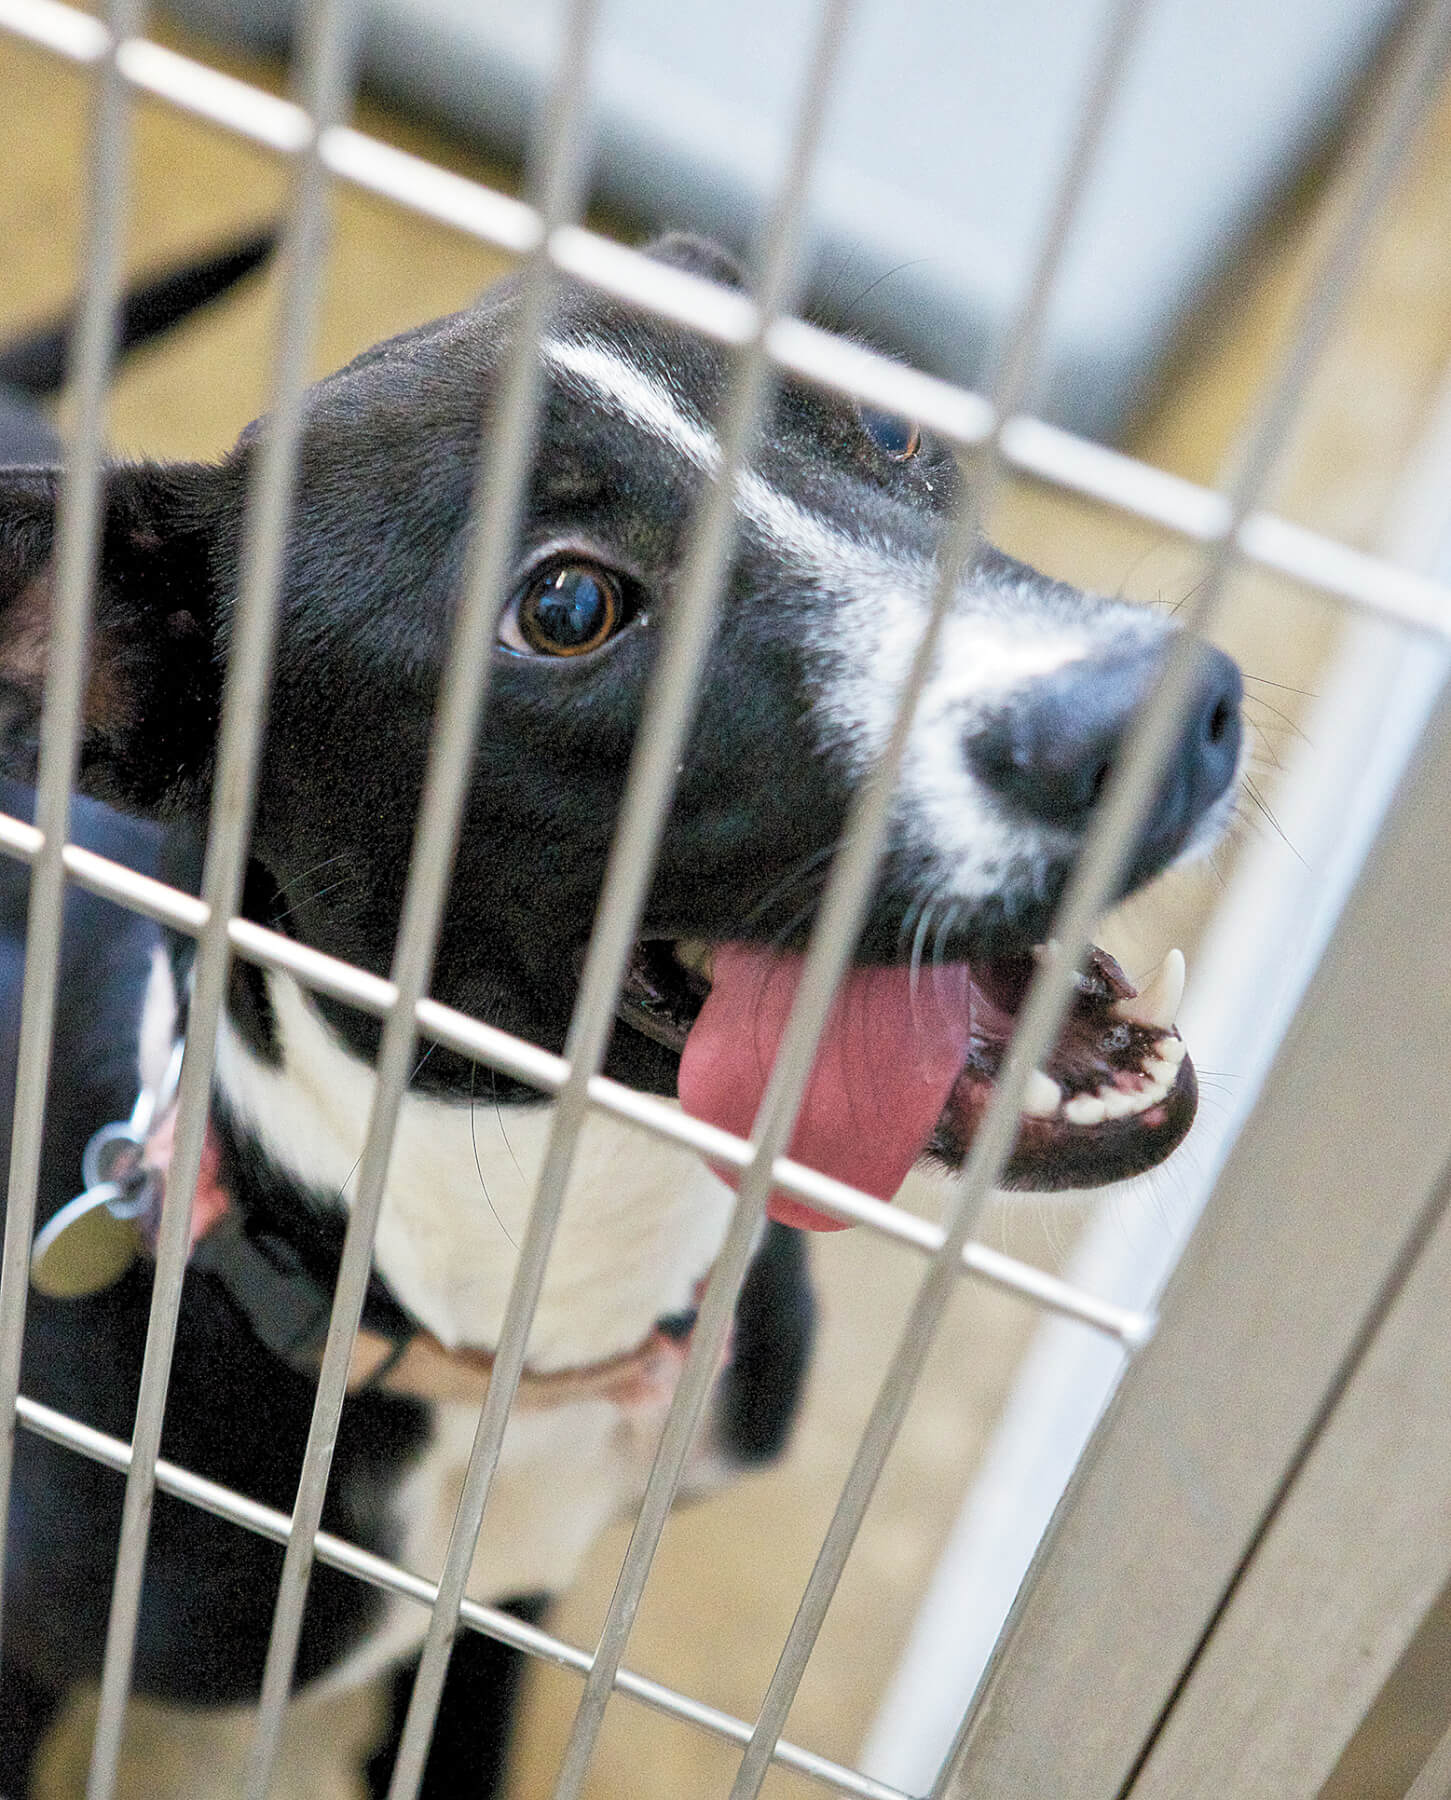 COVER STORY: County shelter claims improvements despite legal concerns